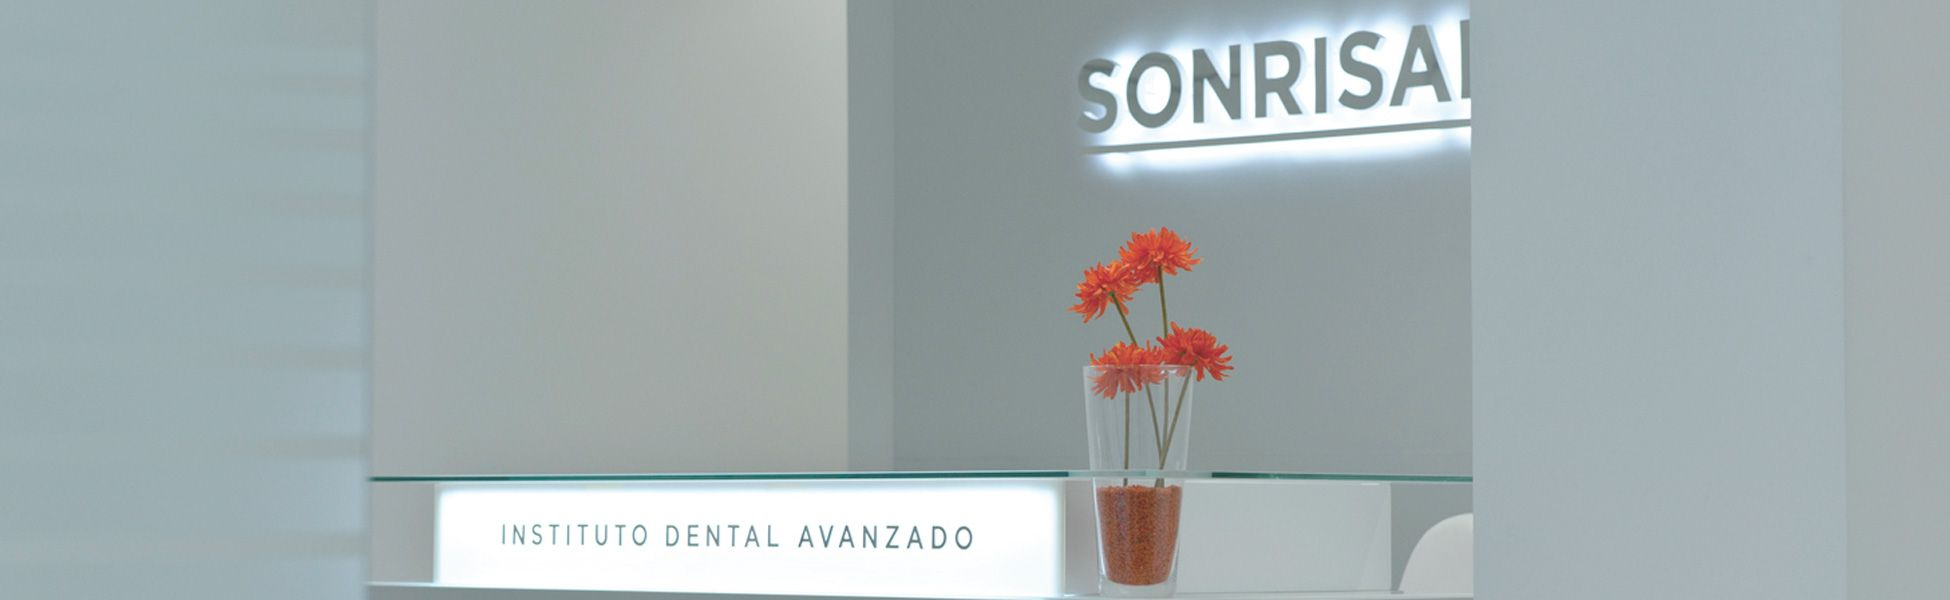 Clinica-sonrisalud-01